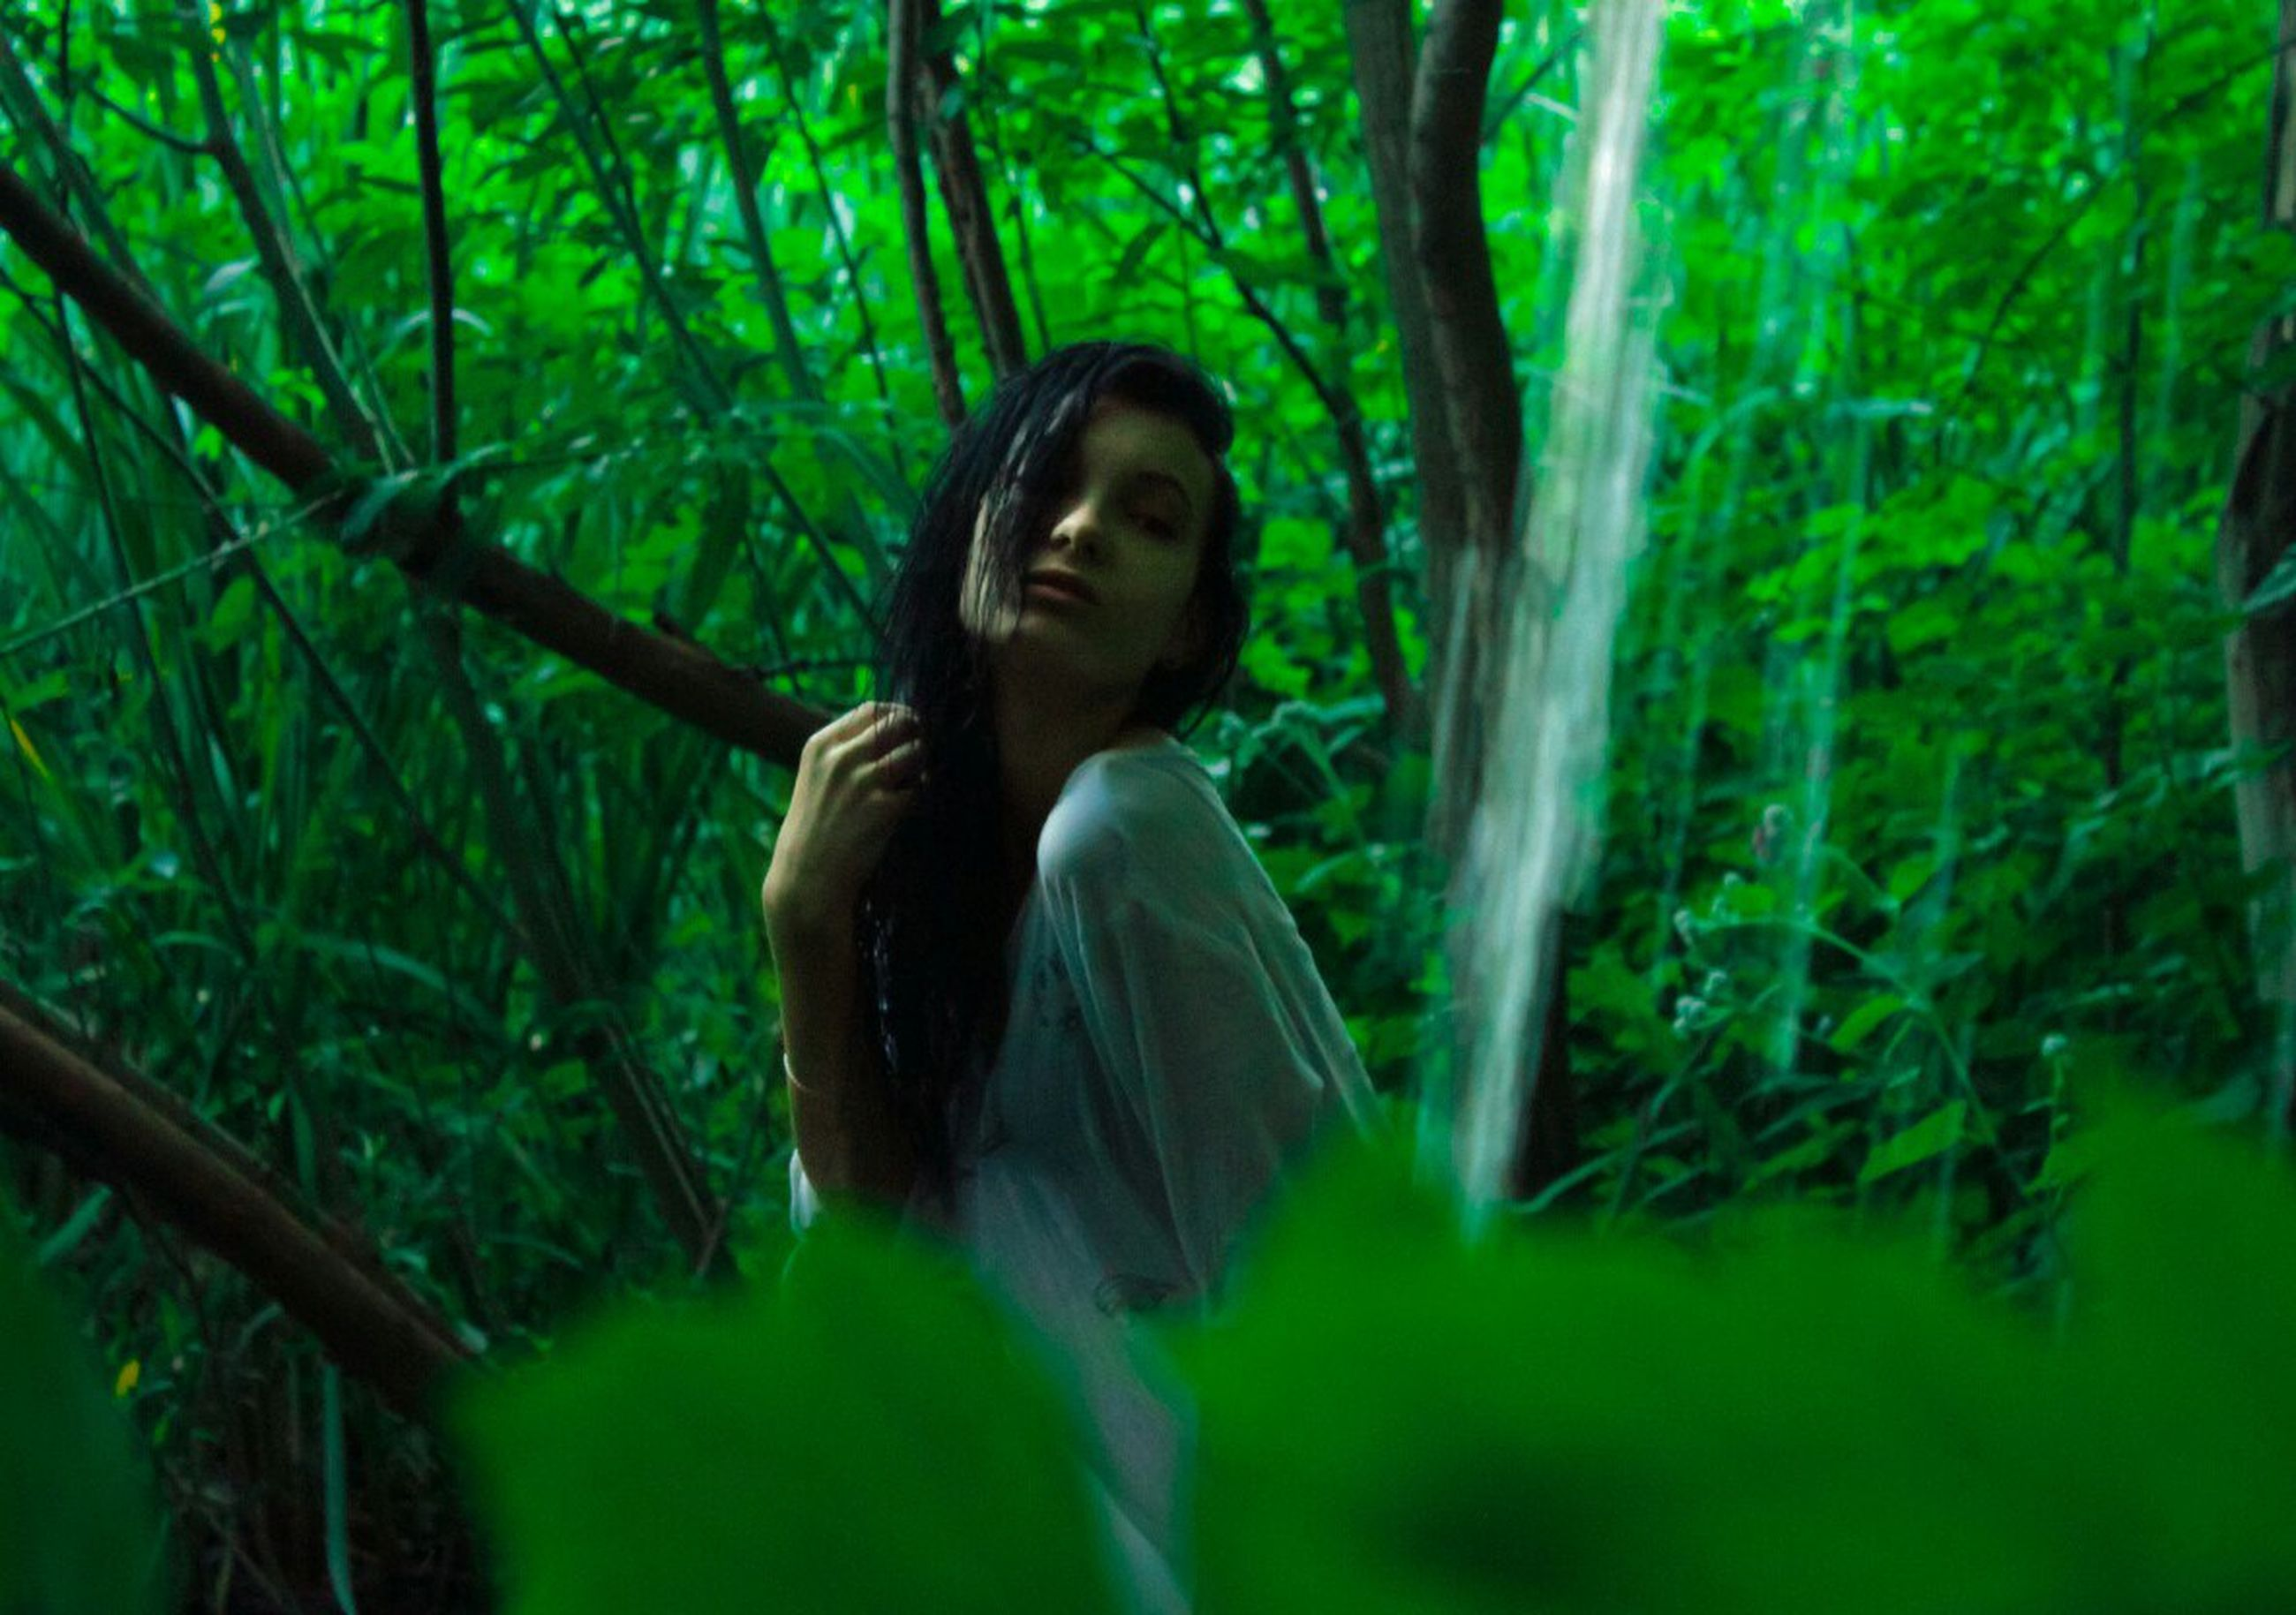 forest, young women, young adult, lifestyles, leisure activity, person, long hair, side view, casual clothing, woodland, tree, tree trunk, green color, vacations, branch, front view, tourism, beauty, plant, non-urban scene, nature, bamboo - plant, tranquility